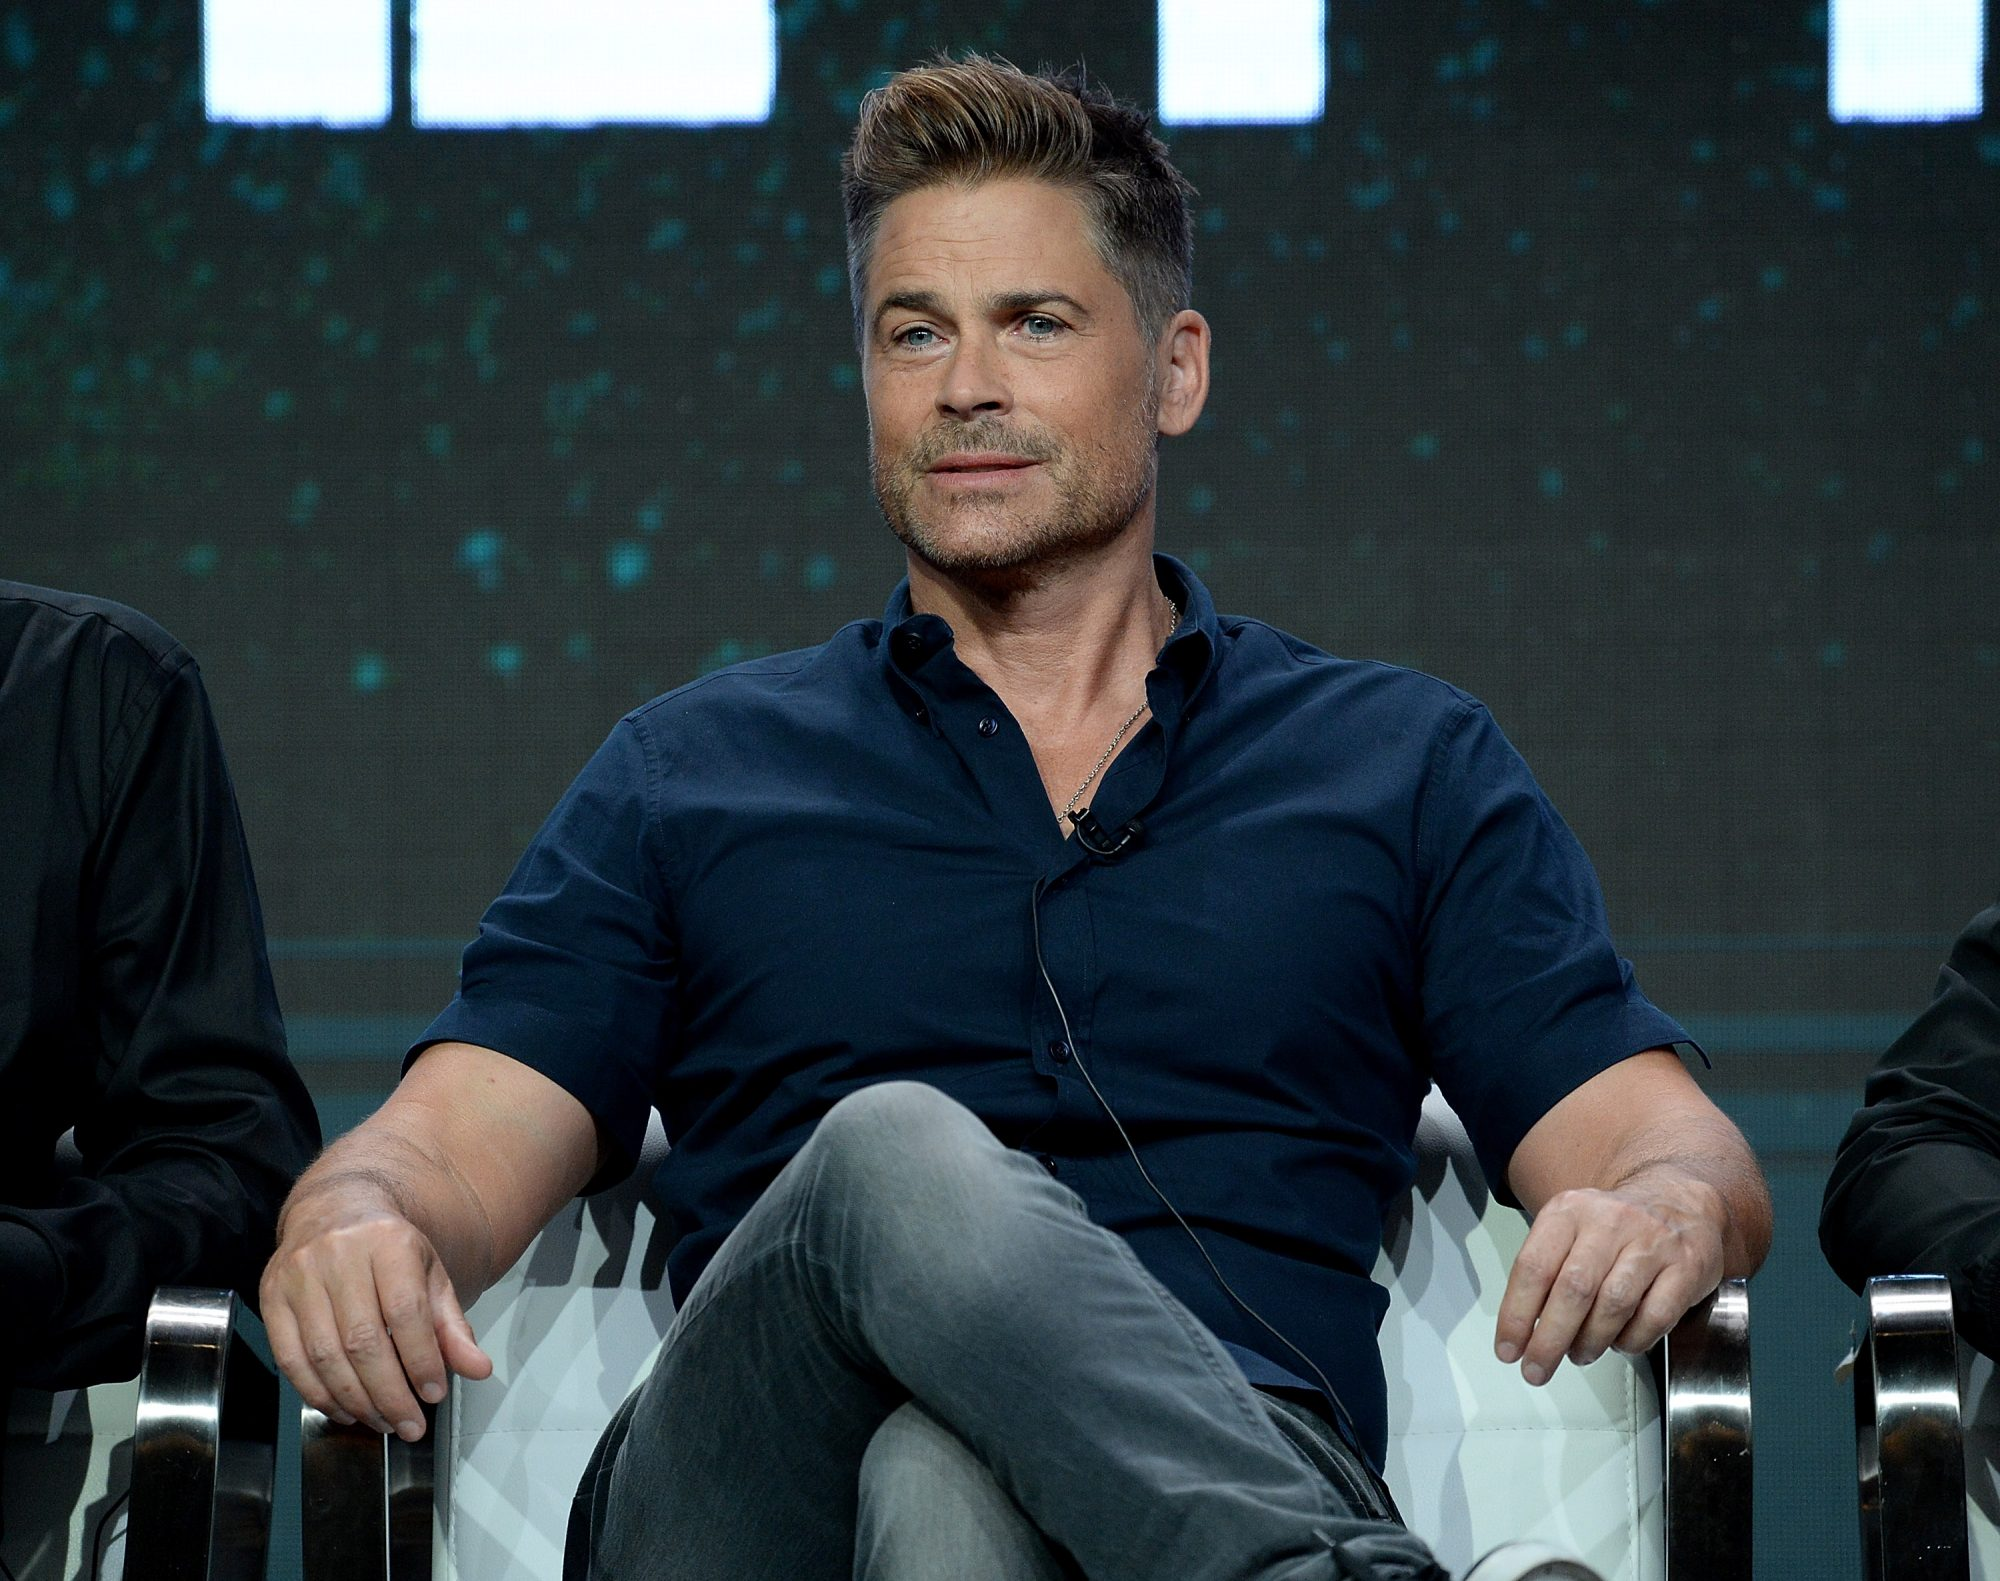 Rob Lowe, on finding a silver lining in alcoholism